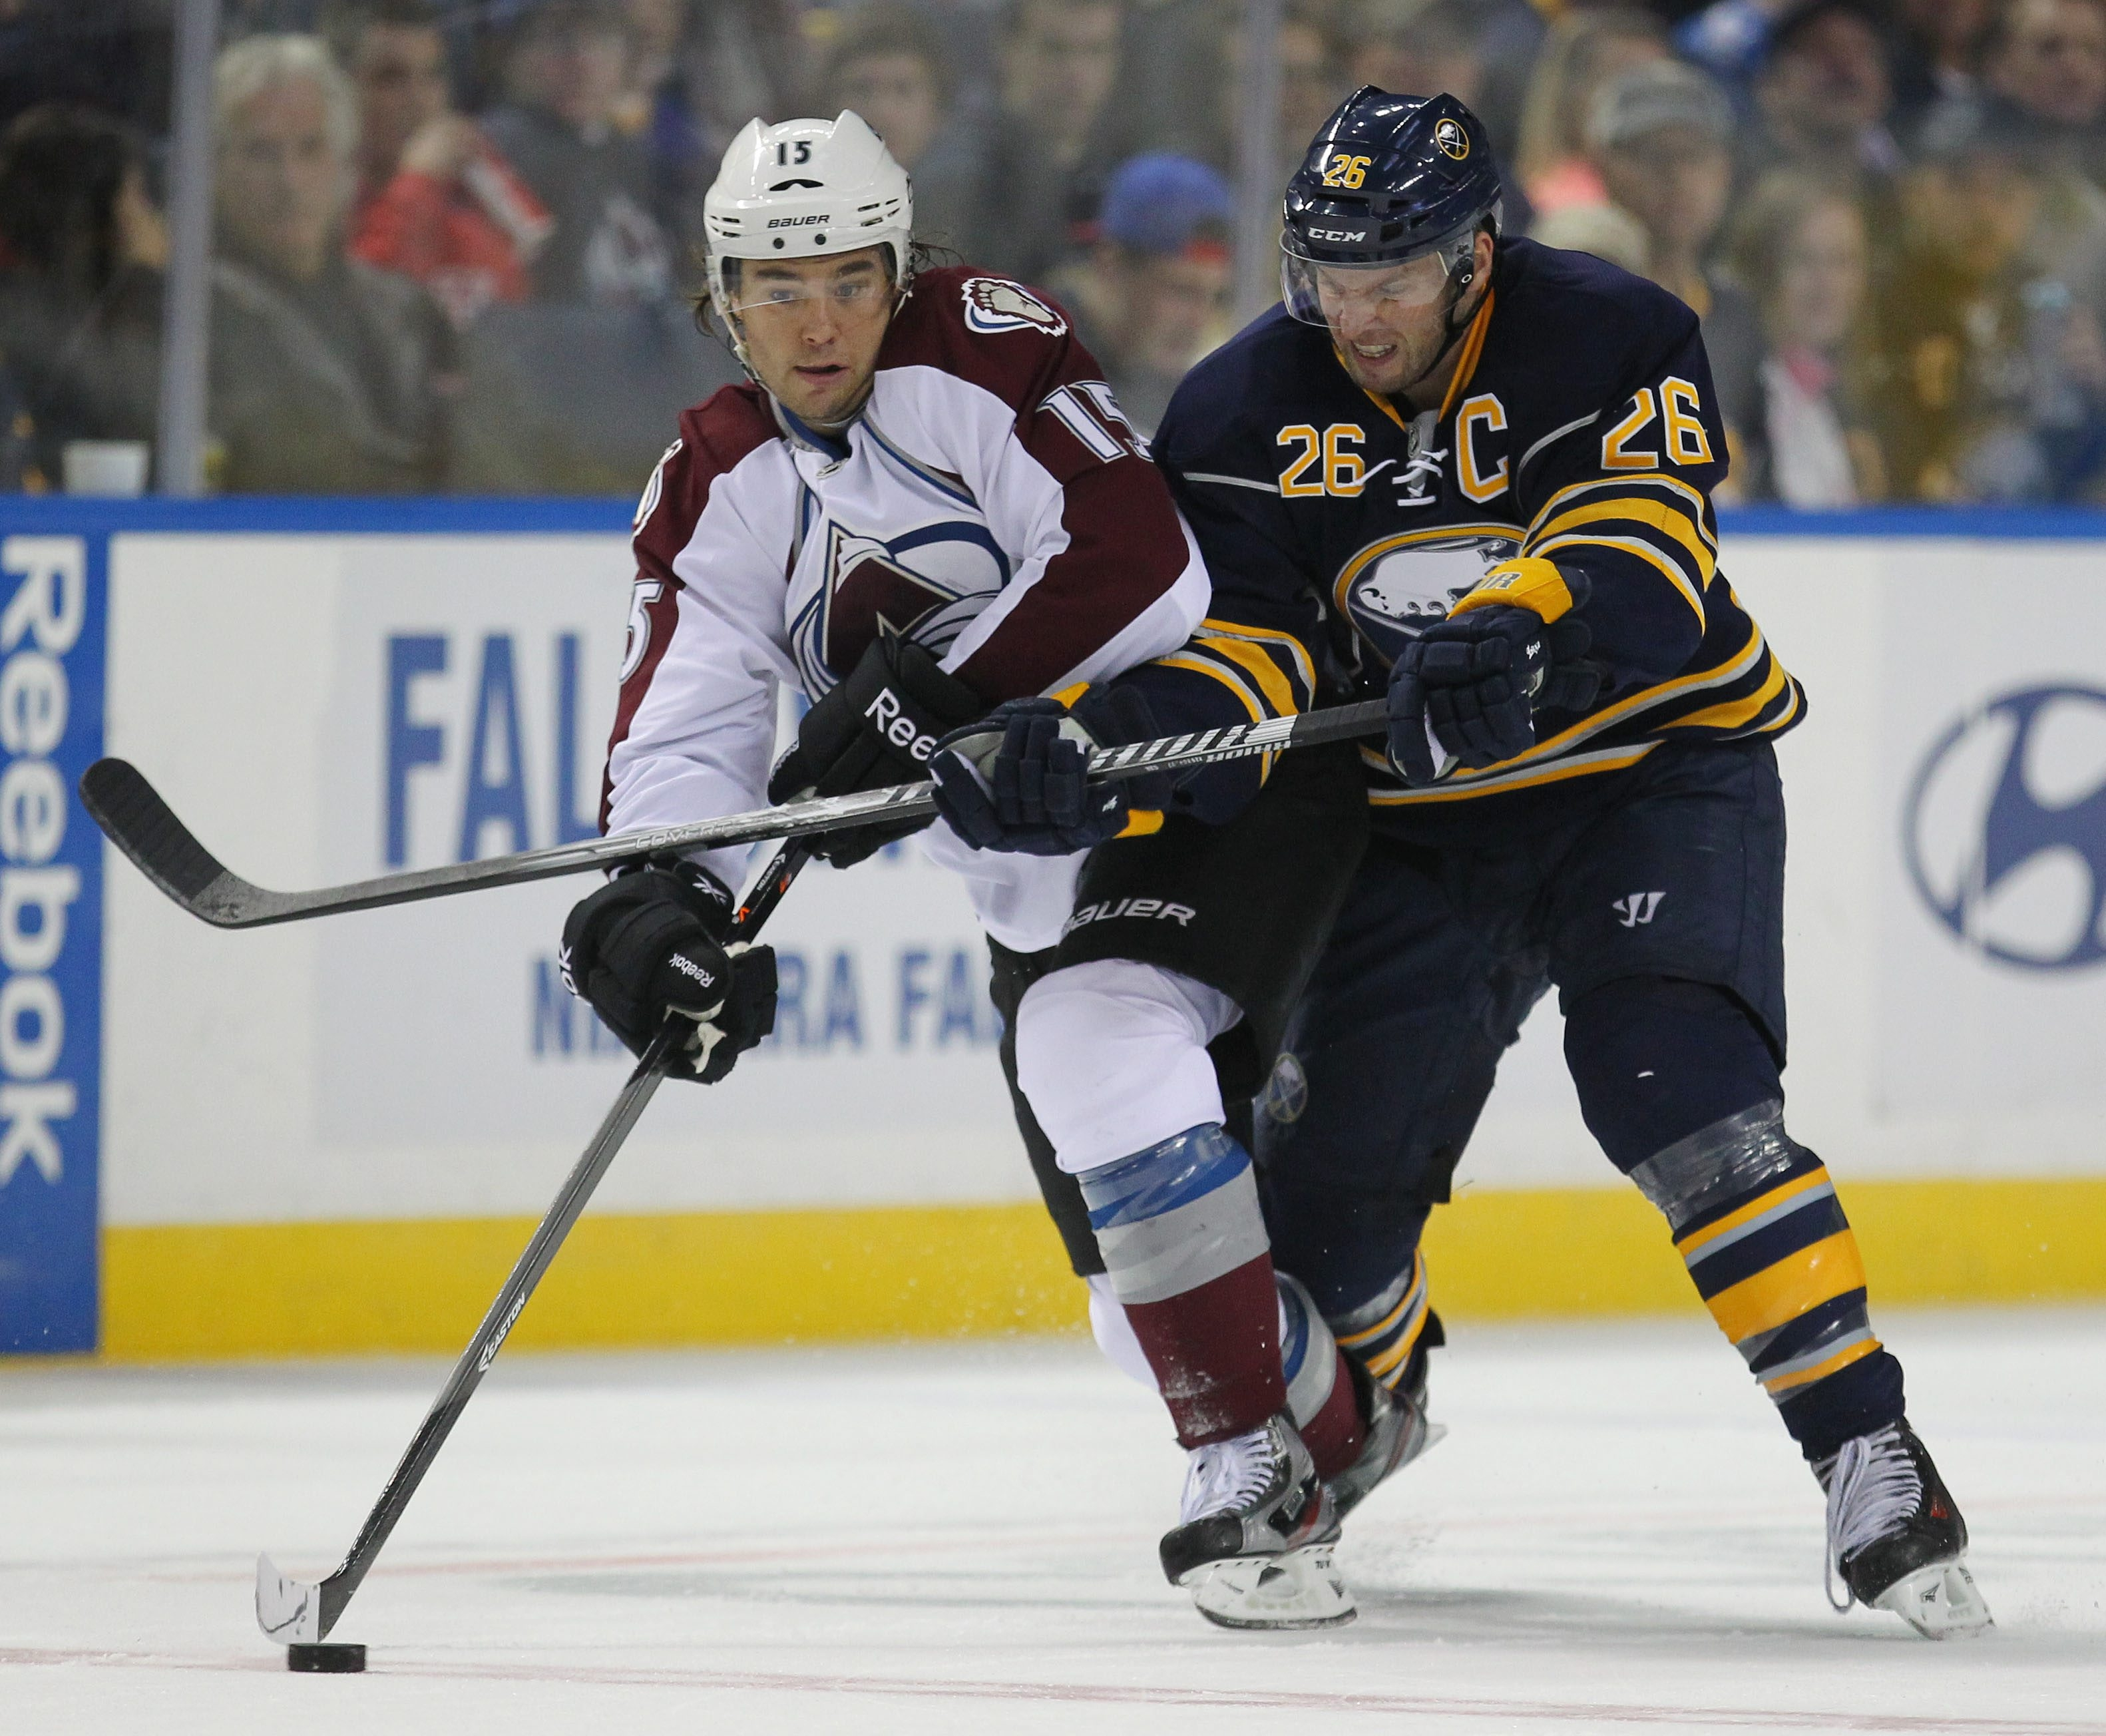 The Sabres' Thomas Vanek tries to knock Colorado's P.A. Parenteau off the puck during the second period at the First Niagara Center.